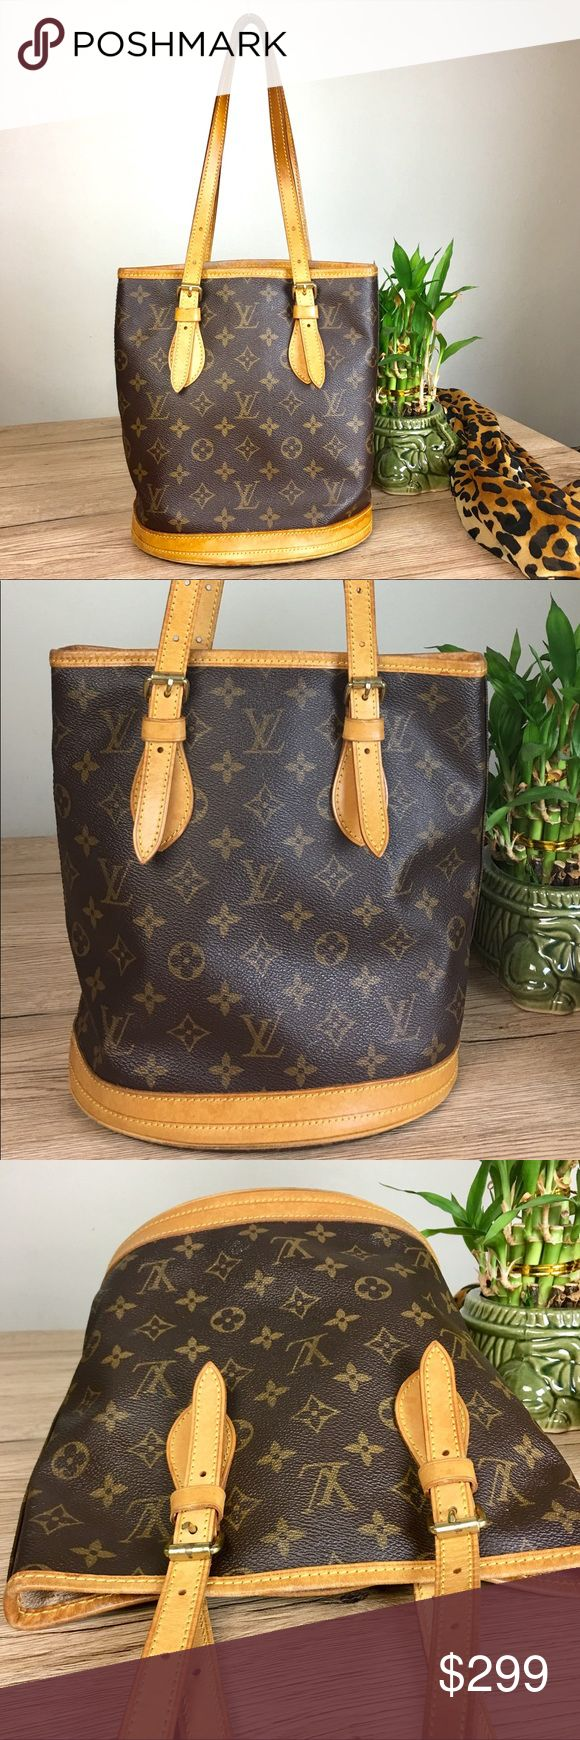 "Louis Vuitton Monogram Bucket PM Shoulder Bag Gently used. Smoke free home	  W8.6 x H10 x D6.3"" / Shoulder Drop 6.3-9.8""(Approx) Long Wallet with Coin Purse but it hasn't coin purse Louis Vuitton Bags Shoulder Bags"